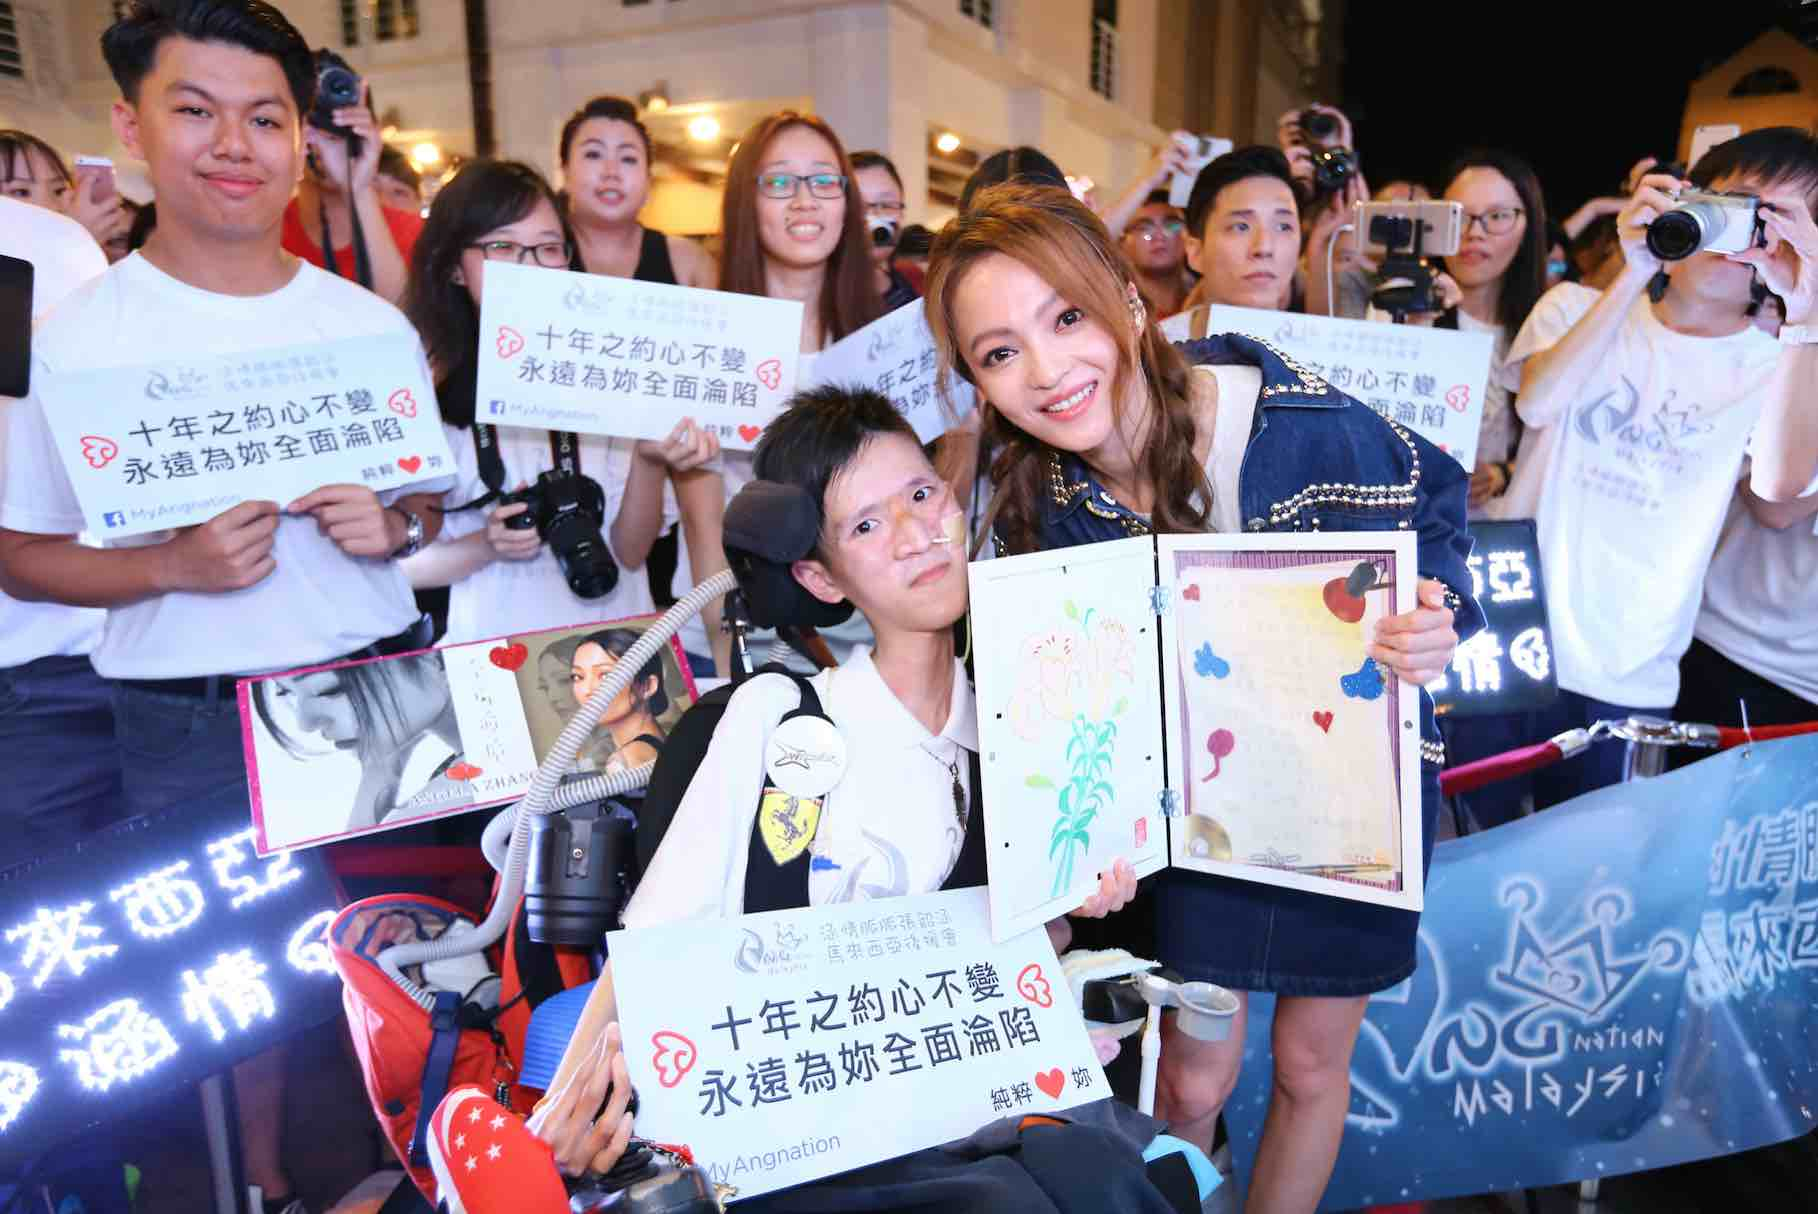 angela-zhang-with-fans-aspirantsg